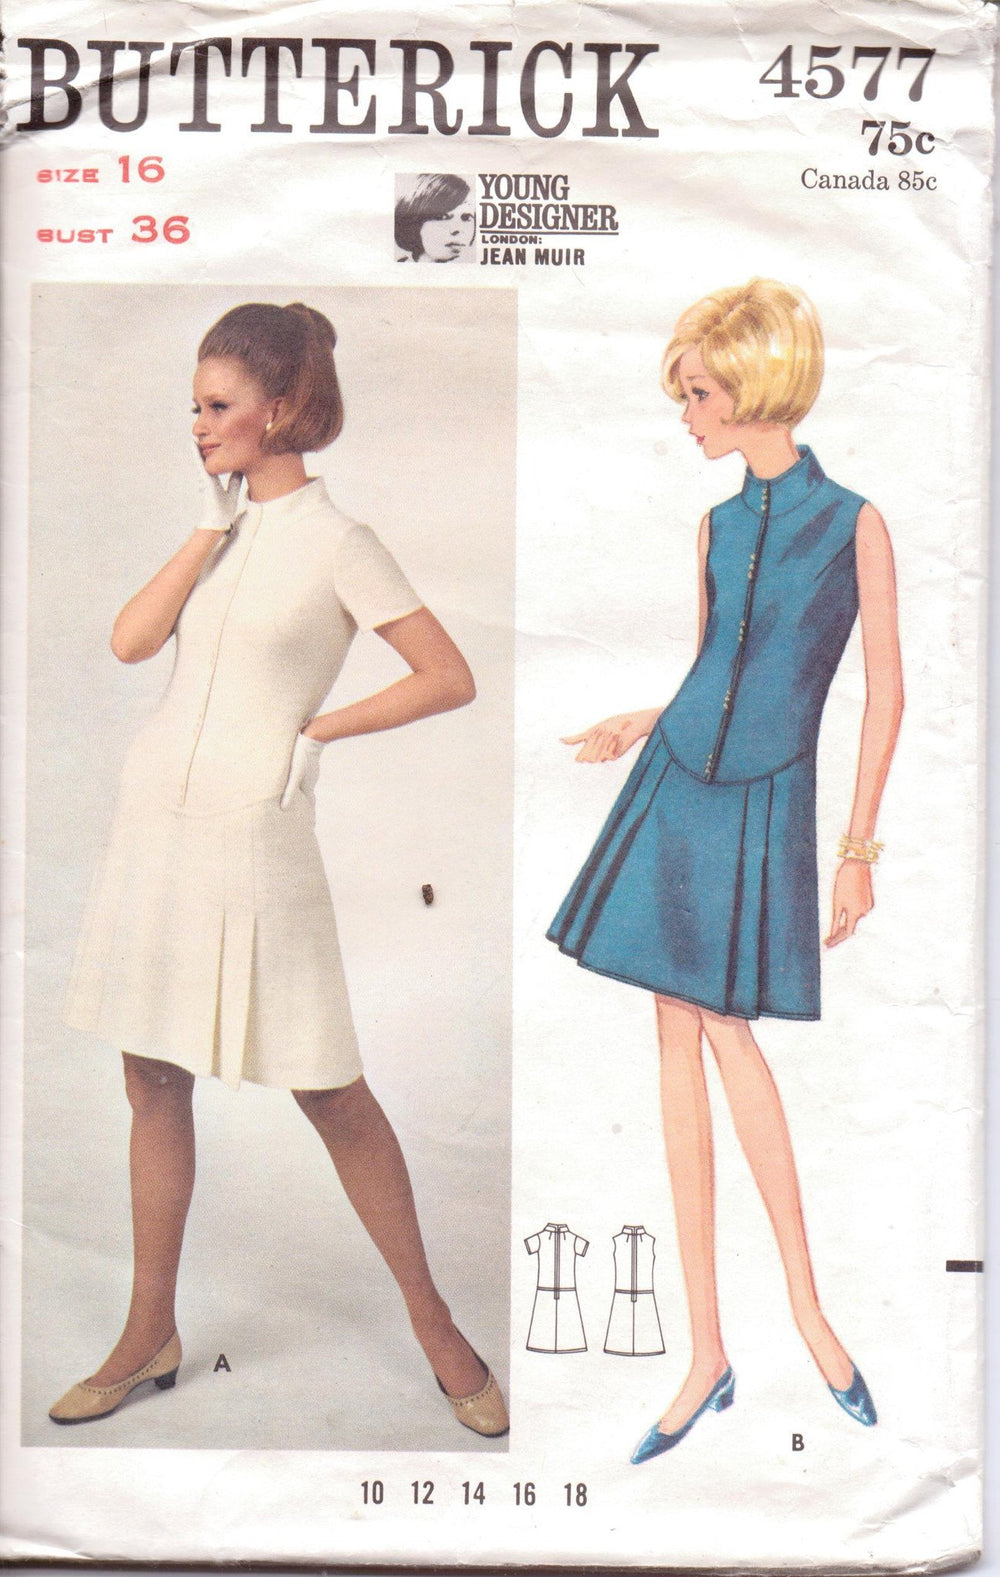 Butterick 4577 Ladies A-Line Dress Low Waist Jean Muir Young Designer Vintage 1960's Sewing Pattern - VintageStitching - Vintage Sewing Patterns